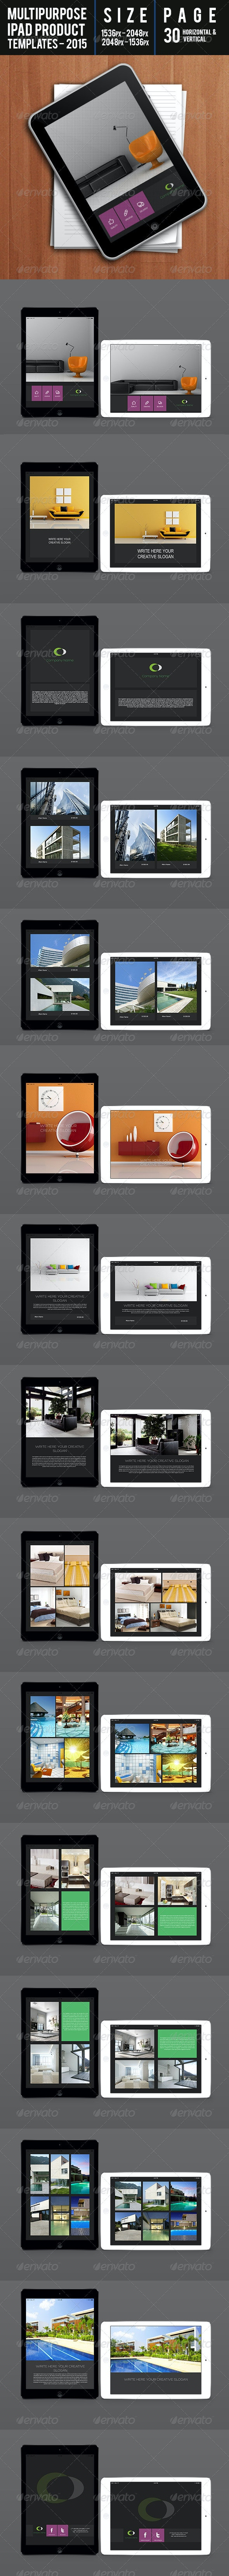 Multipurpose Ipad Product Templates 2015 - Digital Magazines ePublishing